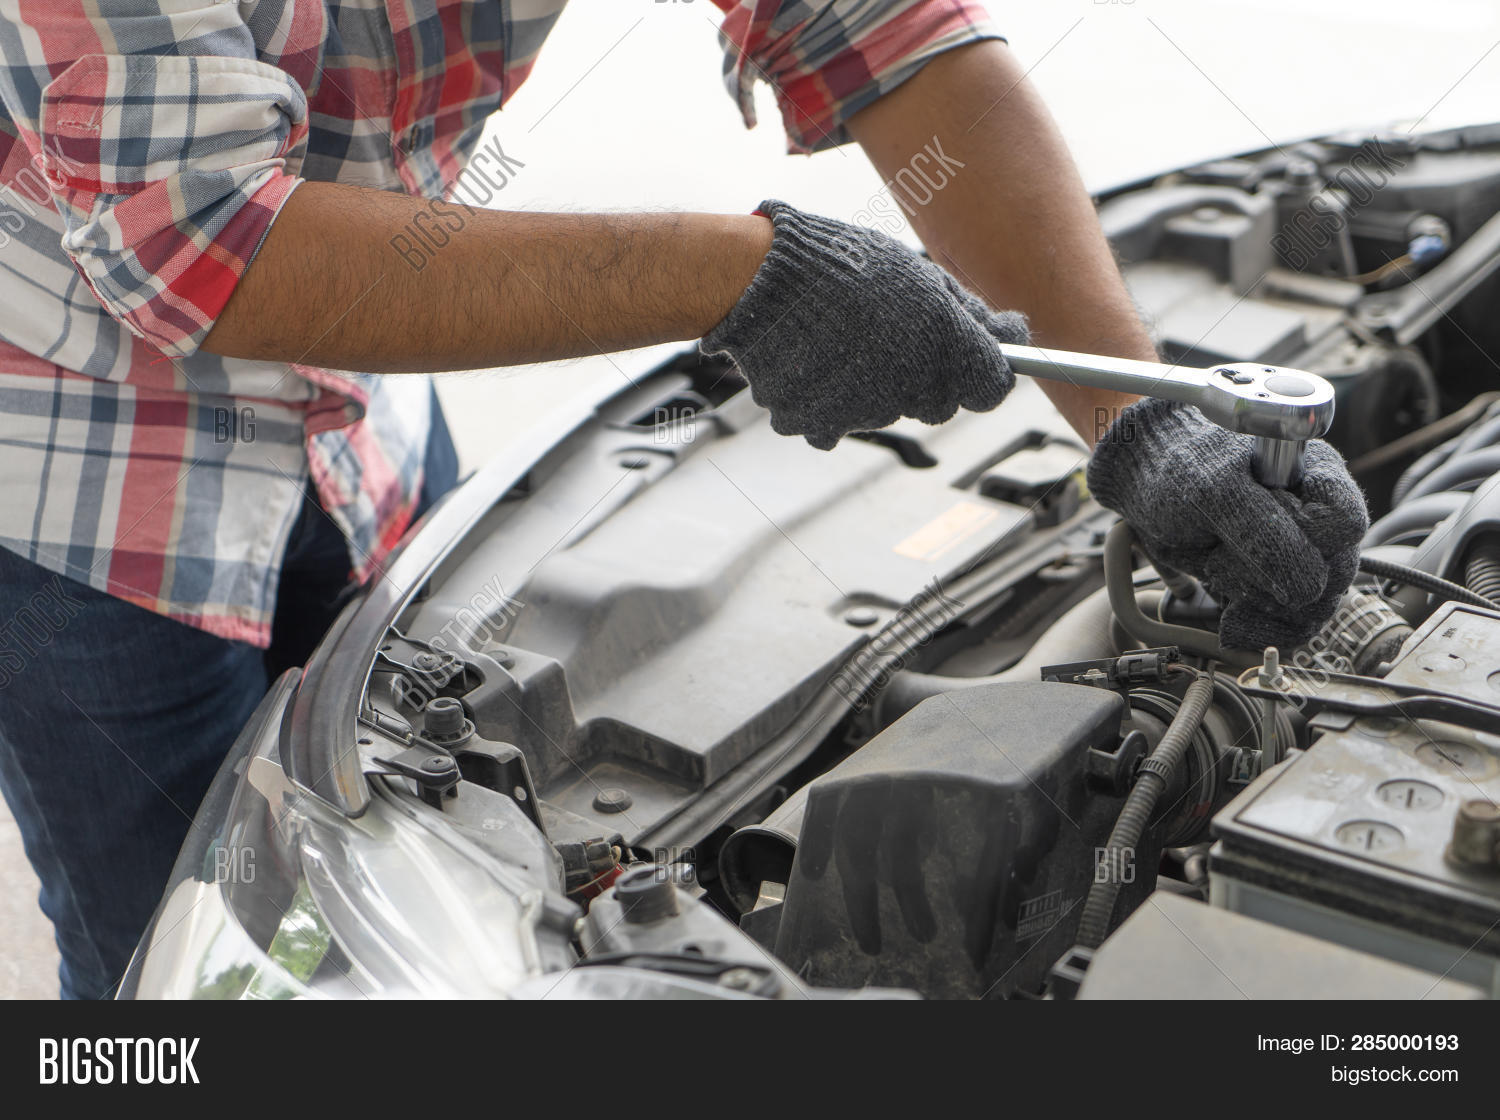 advice,auto,automobile,automotive,battery,car,check,diagnostic,engine,equipment,fix,fixing,garage,hand,home,industry,inspection,job,labour,maintenance,male,man,manual,mechanic,mechanical,mot,motor,occupation,part,people,person,professional,repair,repairman,safety,service,servicing,shop,spanner,station,technician,test,tool,transport,transportation,vehicle,worker,working,workshop,wrench